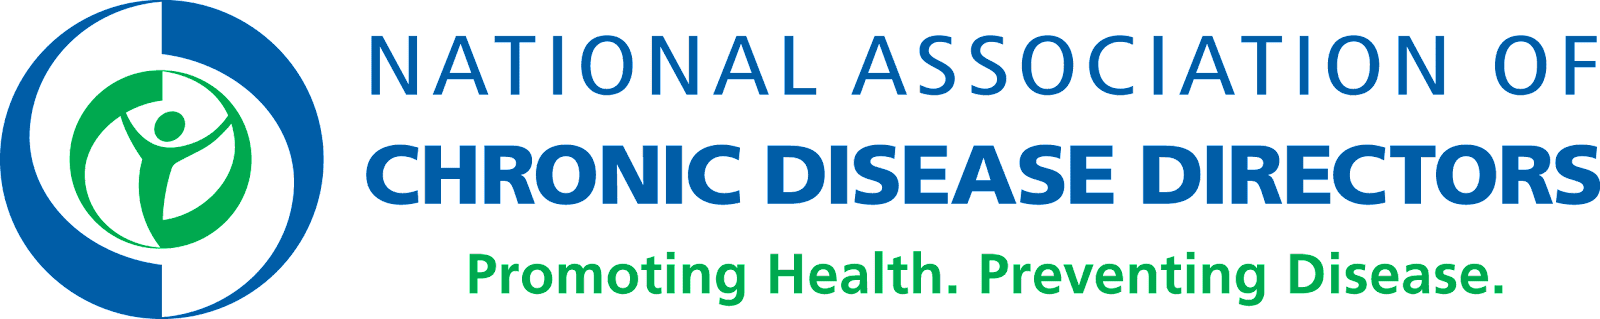 Chronic Disease Prevention - National Association of Chronic Disease  Directors (NACDD)